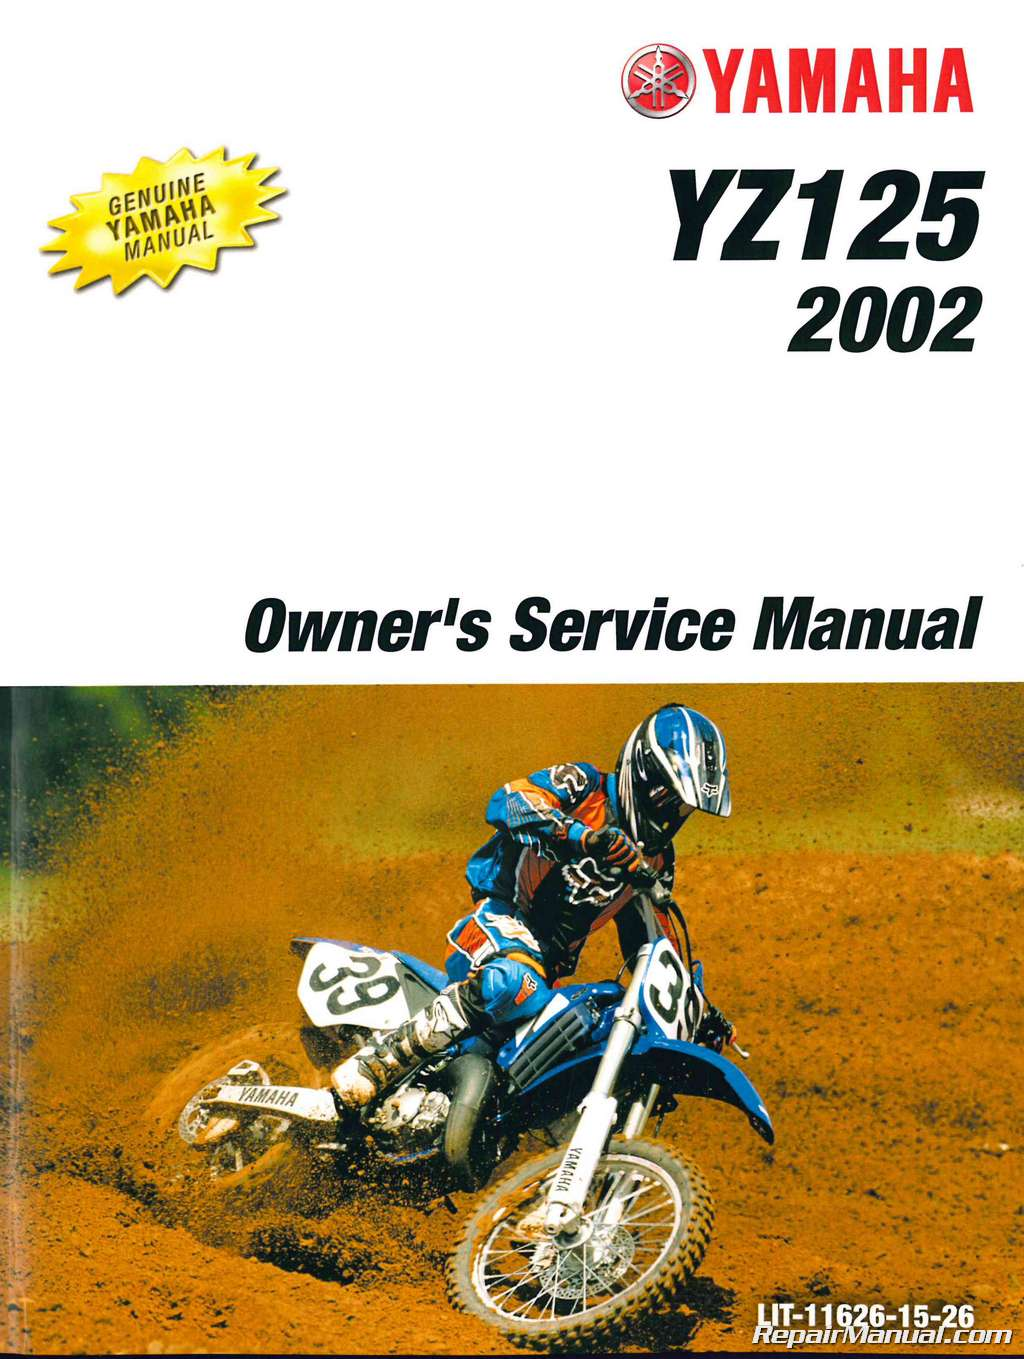 2002-Yamaha-YZ125-Service-Manual1 Yz Ignition Wiring Diagram on headlight diagram, ignition switch, electronic ignition diagram, fuel diagram, circuit diagram, starter diagram, ignition distributor diagram, ignition filter diagram, power diagram, ignition starter, ignition system, ignition wire, motor diagram, ignition coil, ignition fuse, model t ignition diagram, ignition cable, ignition timing, ignition module diagram, coil diagram,